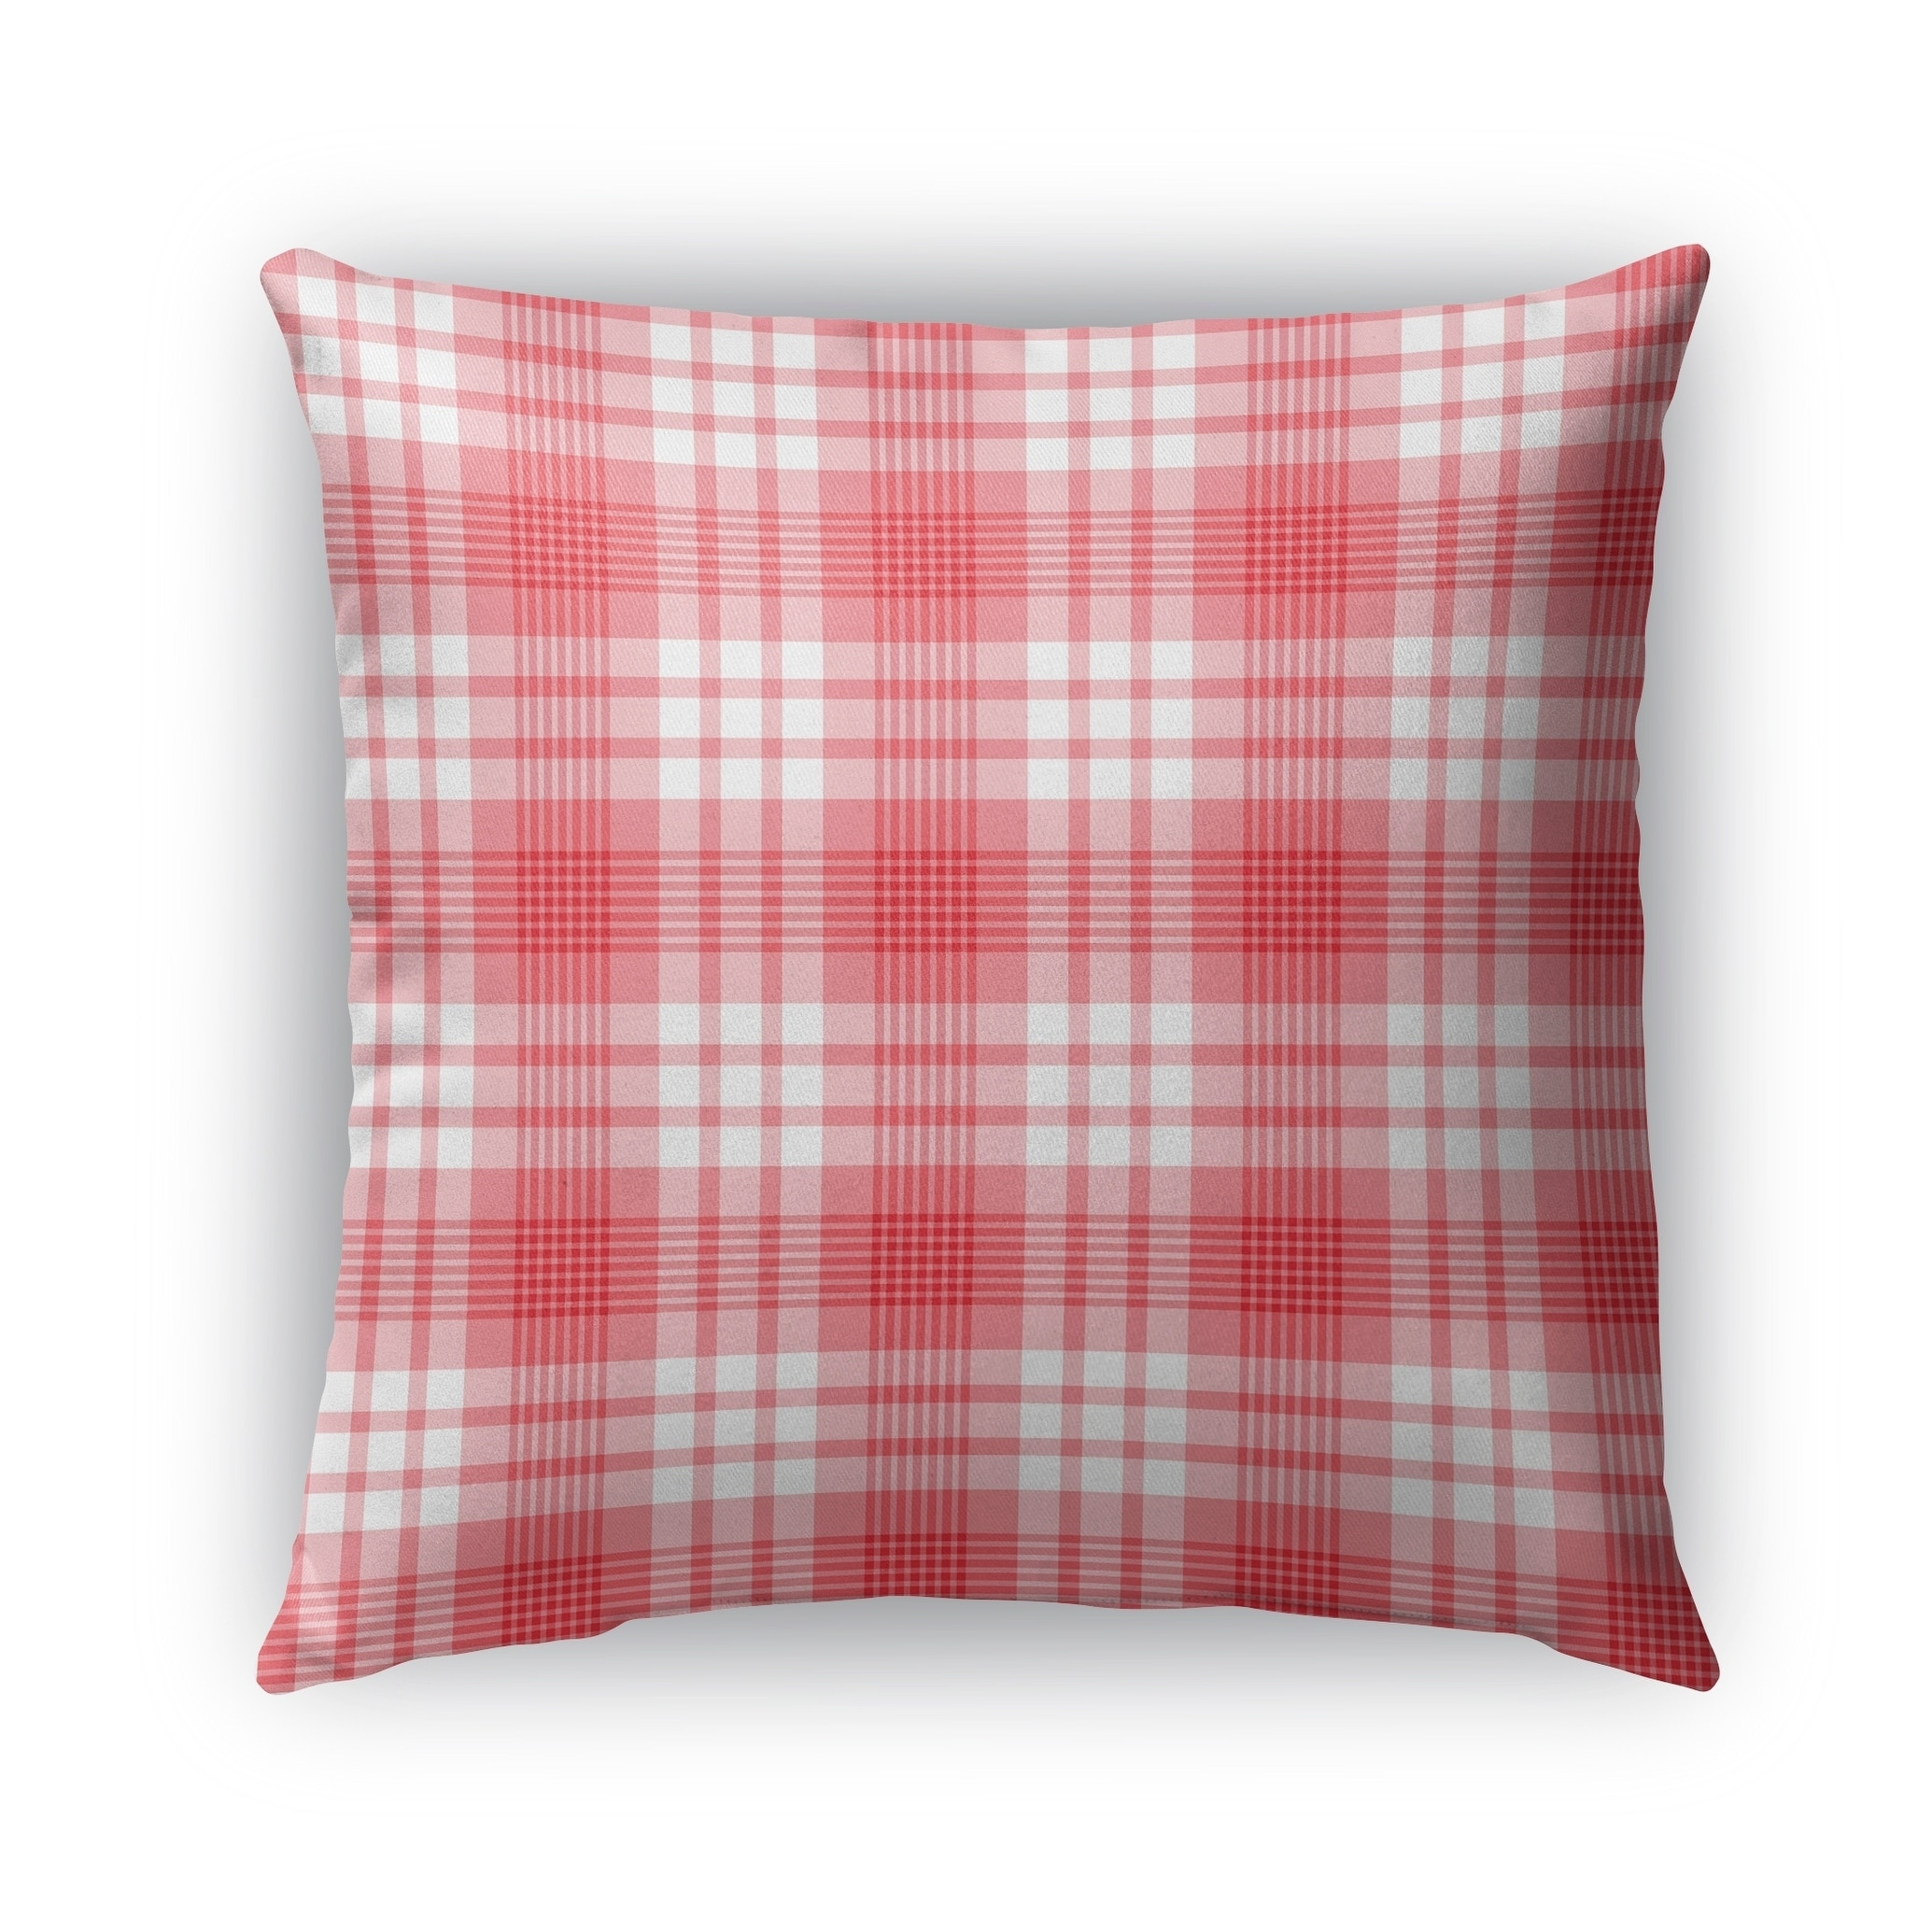 Kavka Designs red; pink candy cane plaid outdoor pillow with insert (18 x 18)